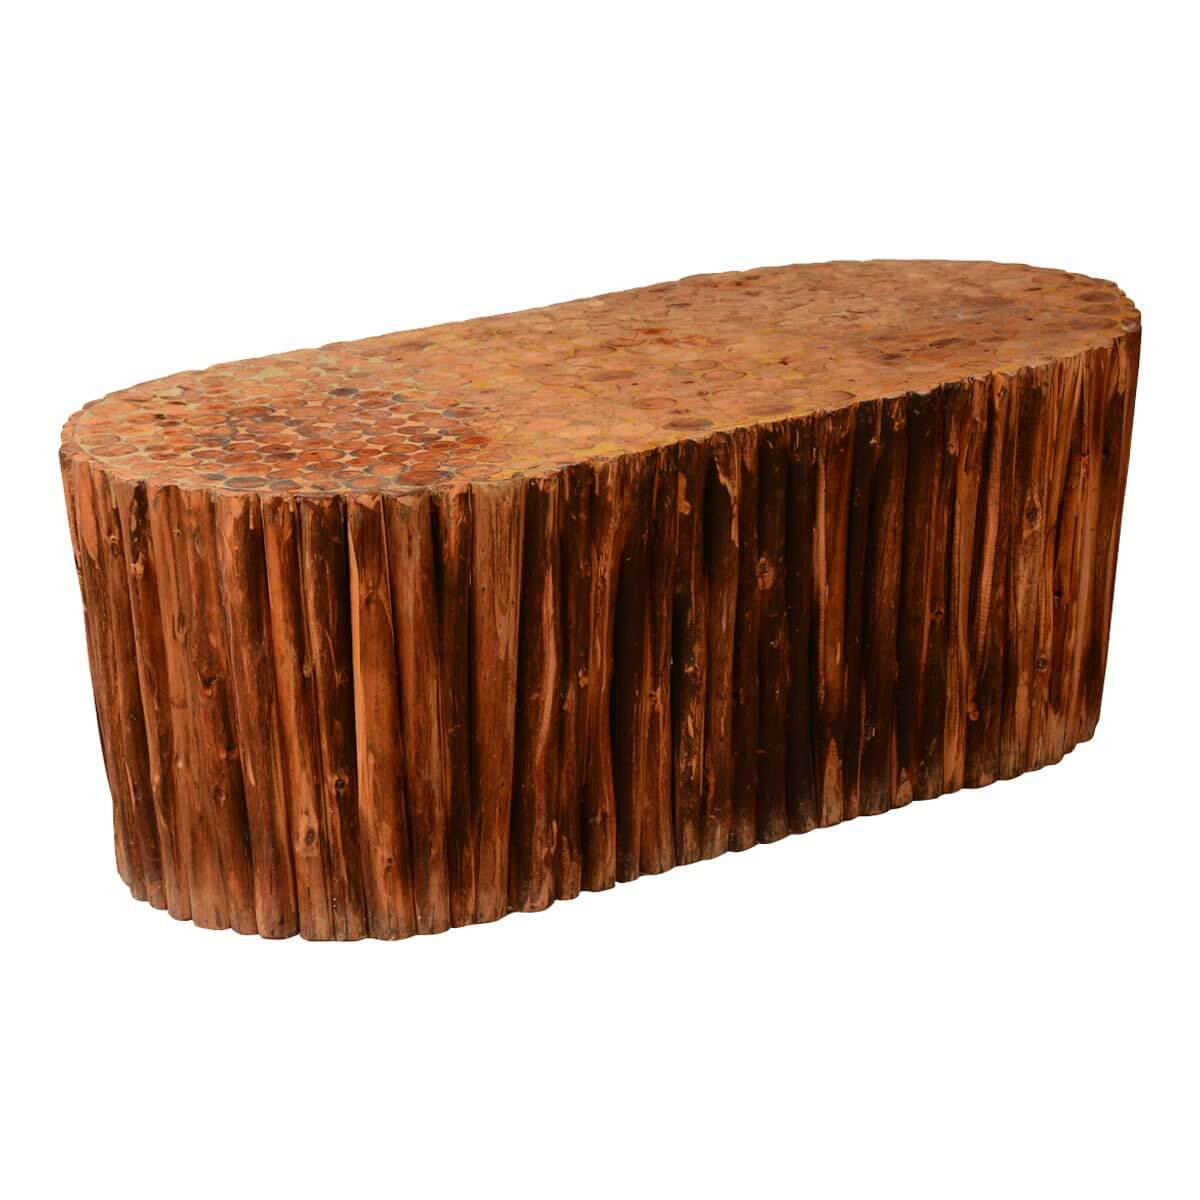 Log Cabin Hardwood Rustic Honeycomb Coffee Table